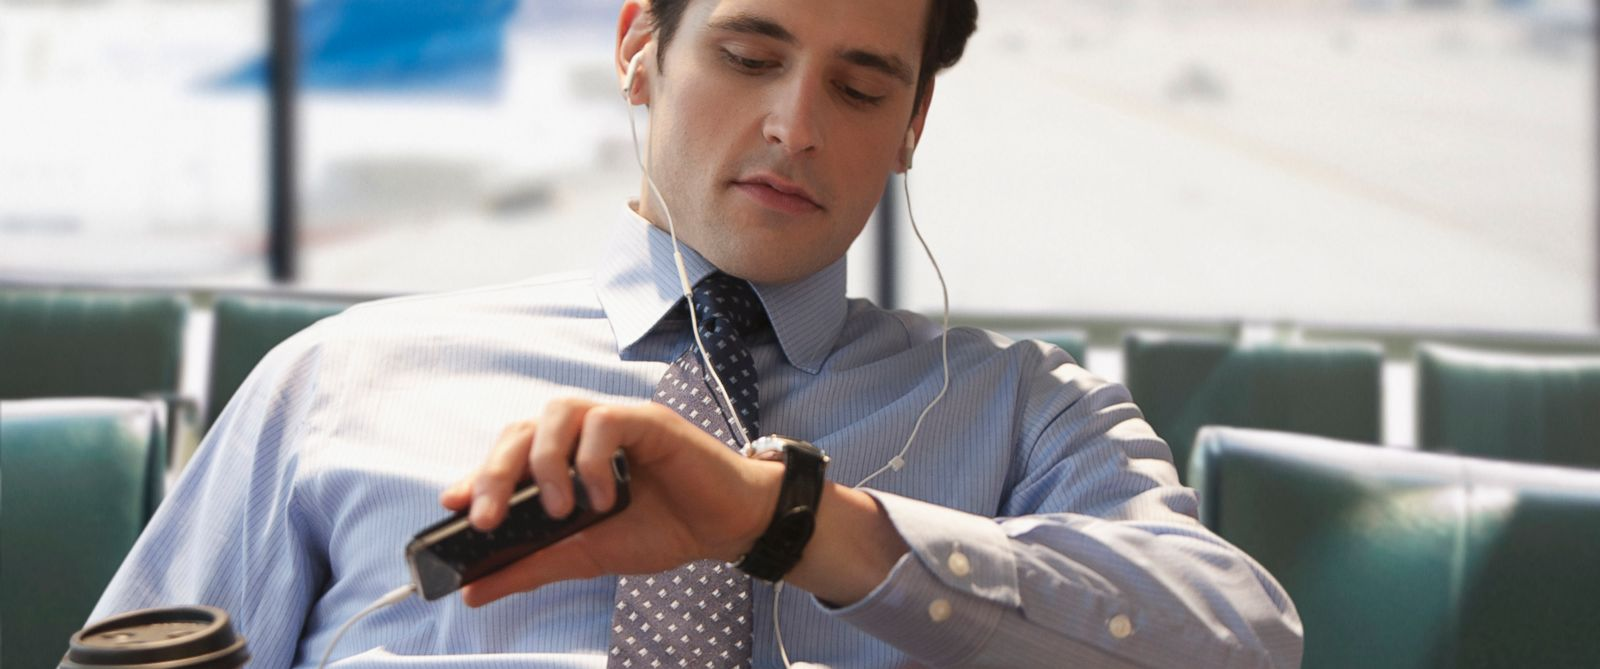 PHOTO: A business man checks the time at airport while using his cell phone.